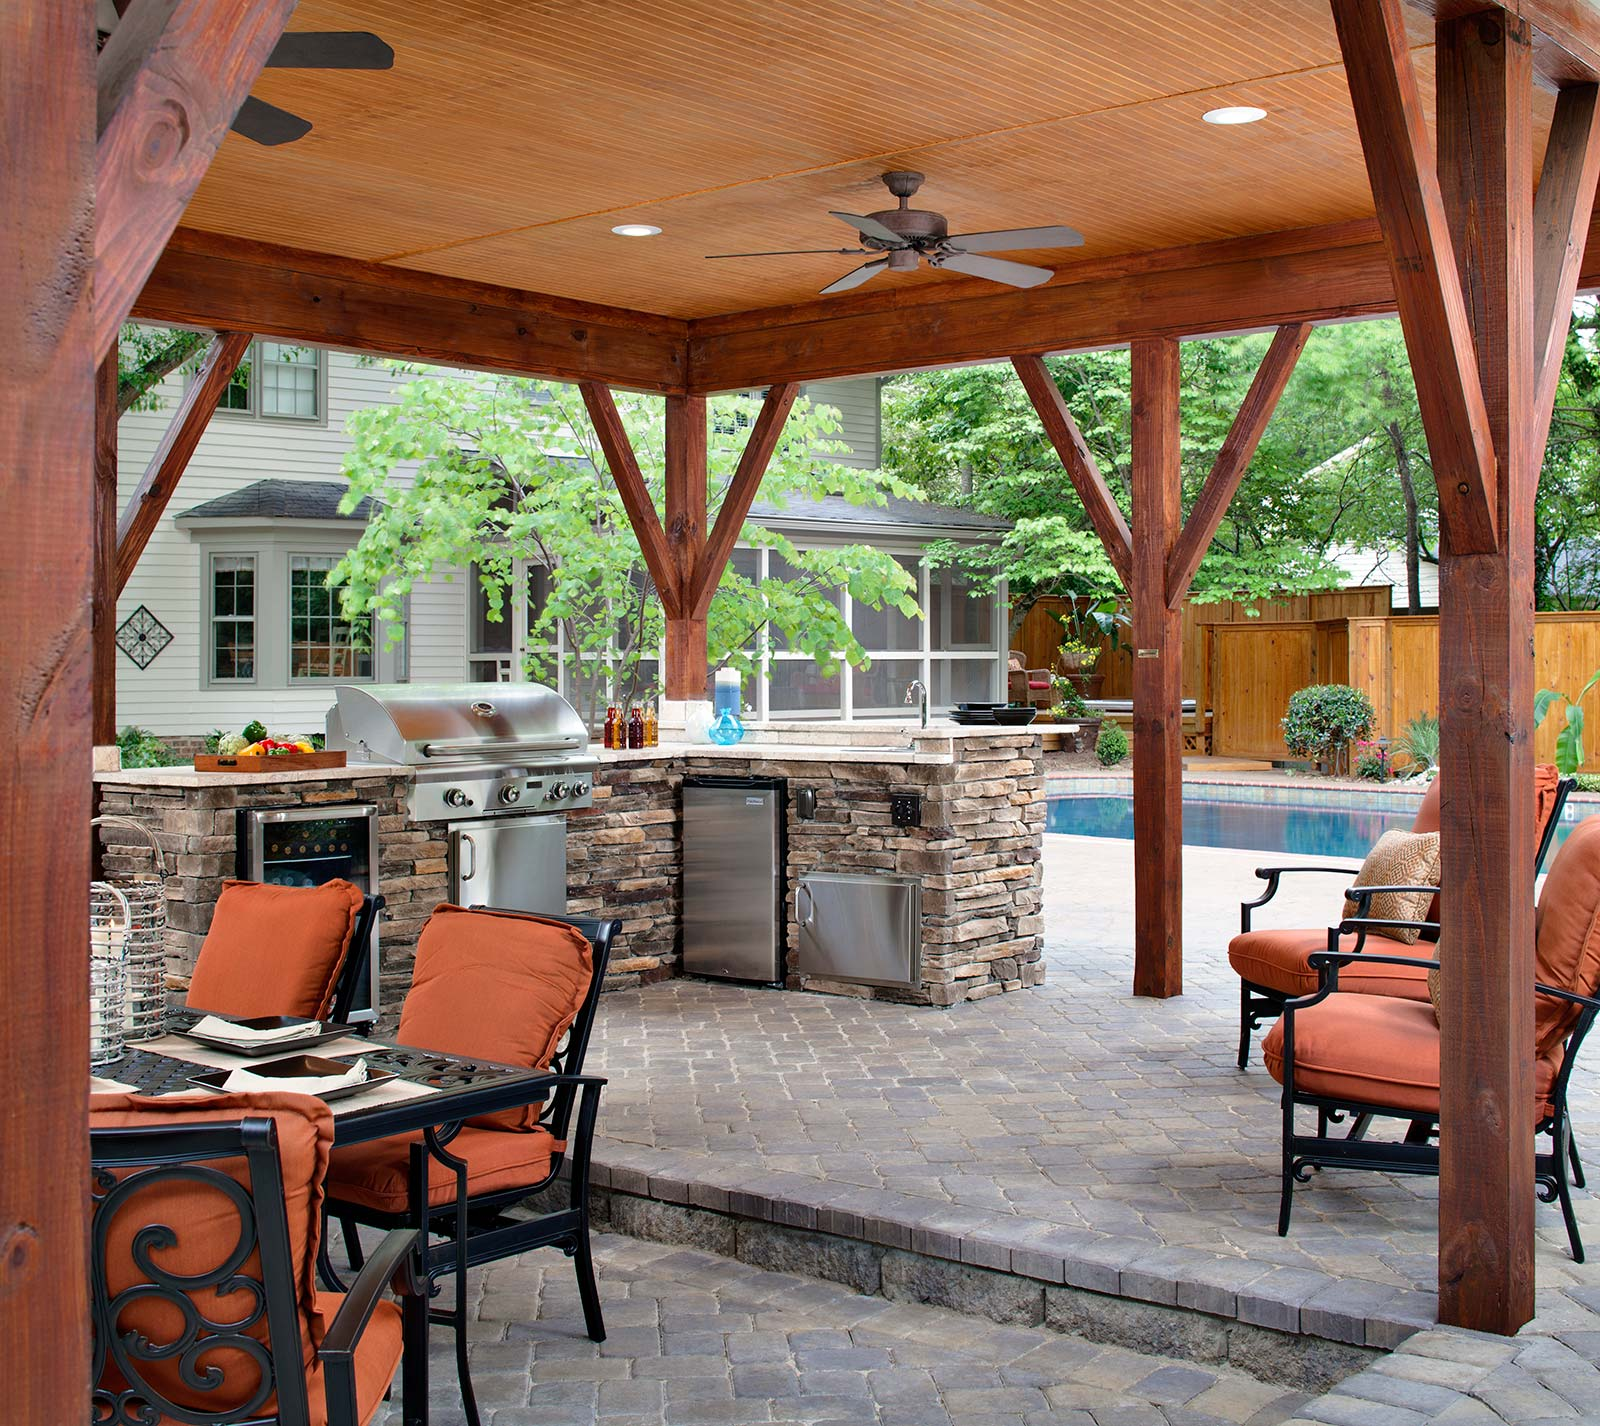 outdoor kitchen for entertaining